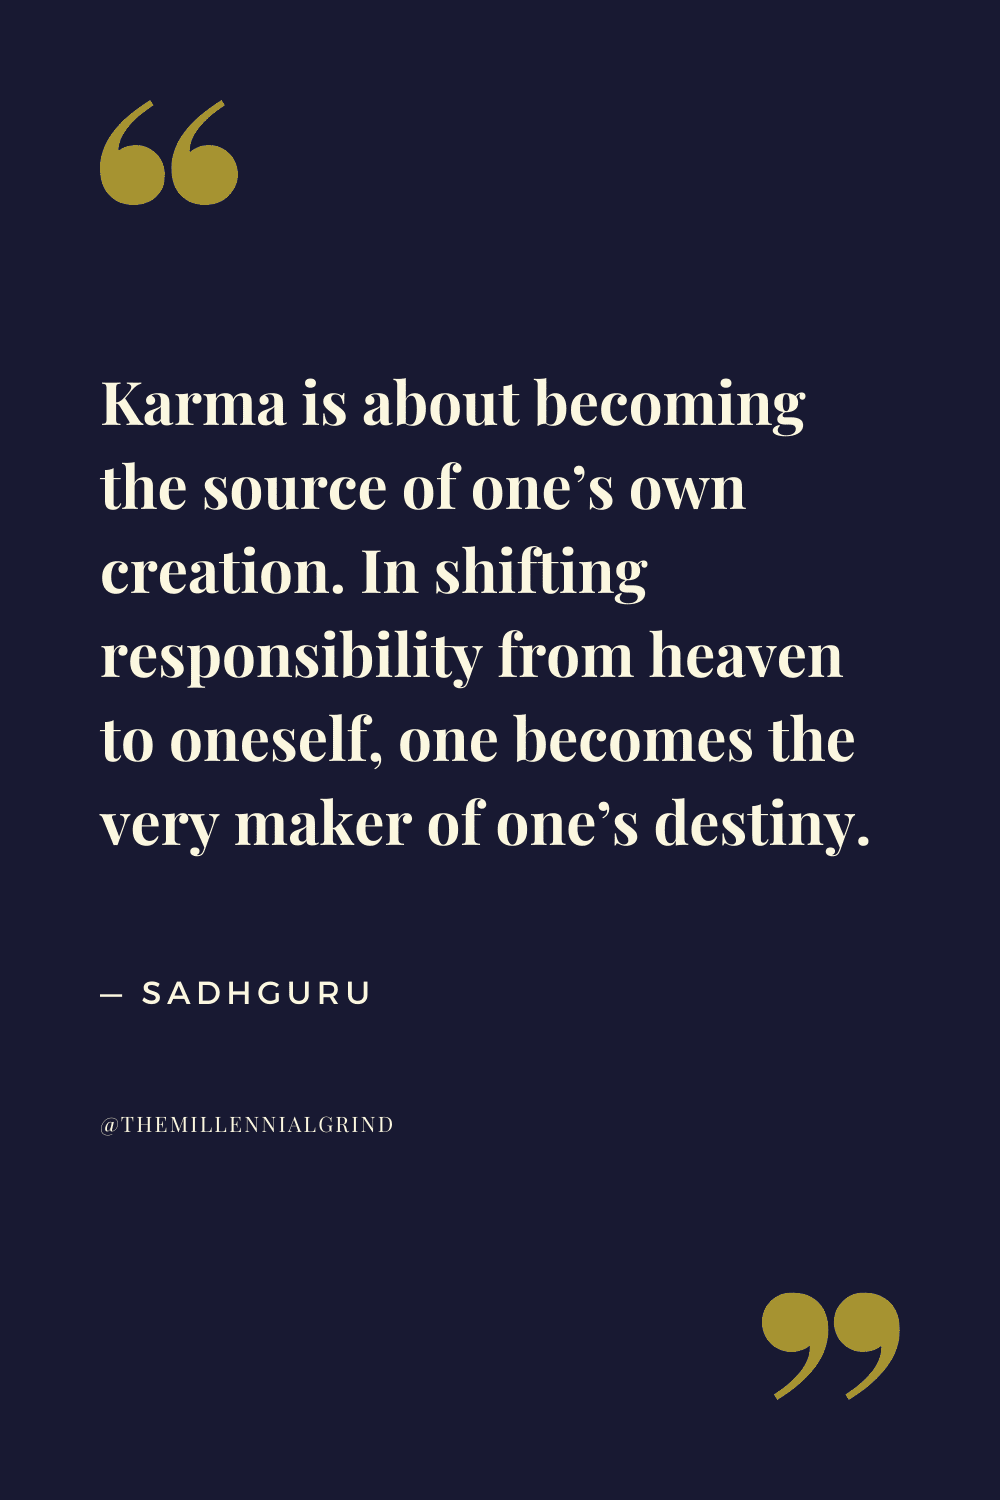 Karma is about becoming the source of one's own creation. In shifting responsibility from heaven to oneself, one becomes the very maker of one's destiny.